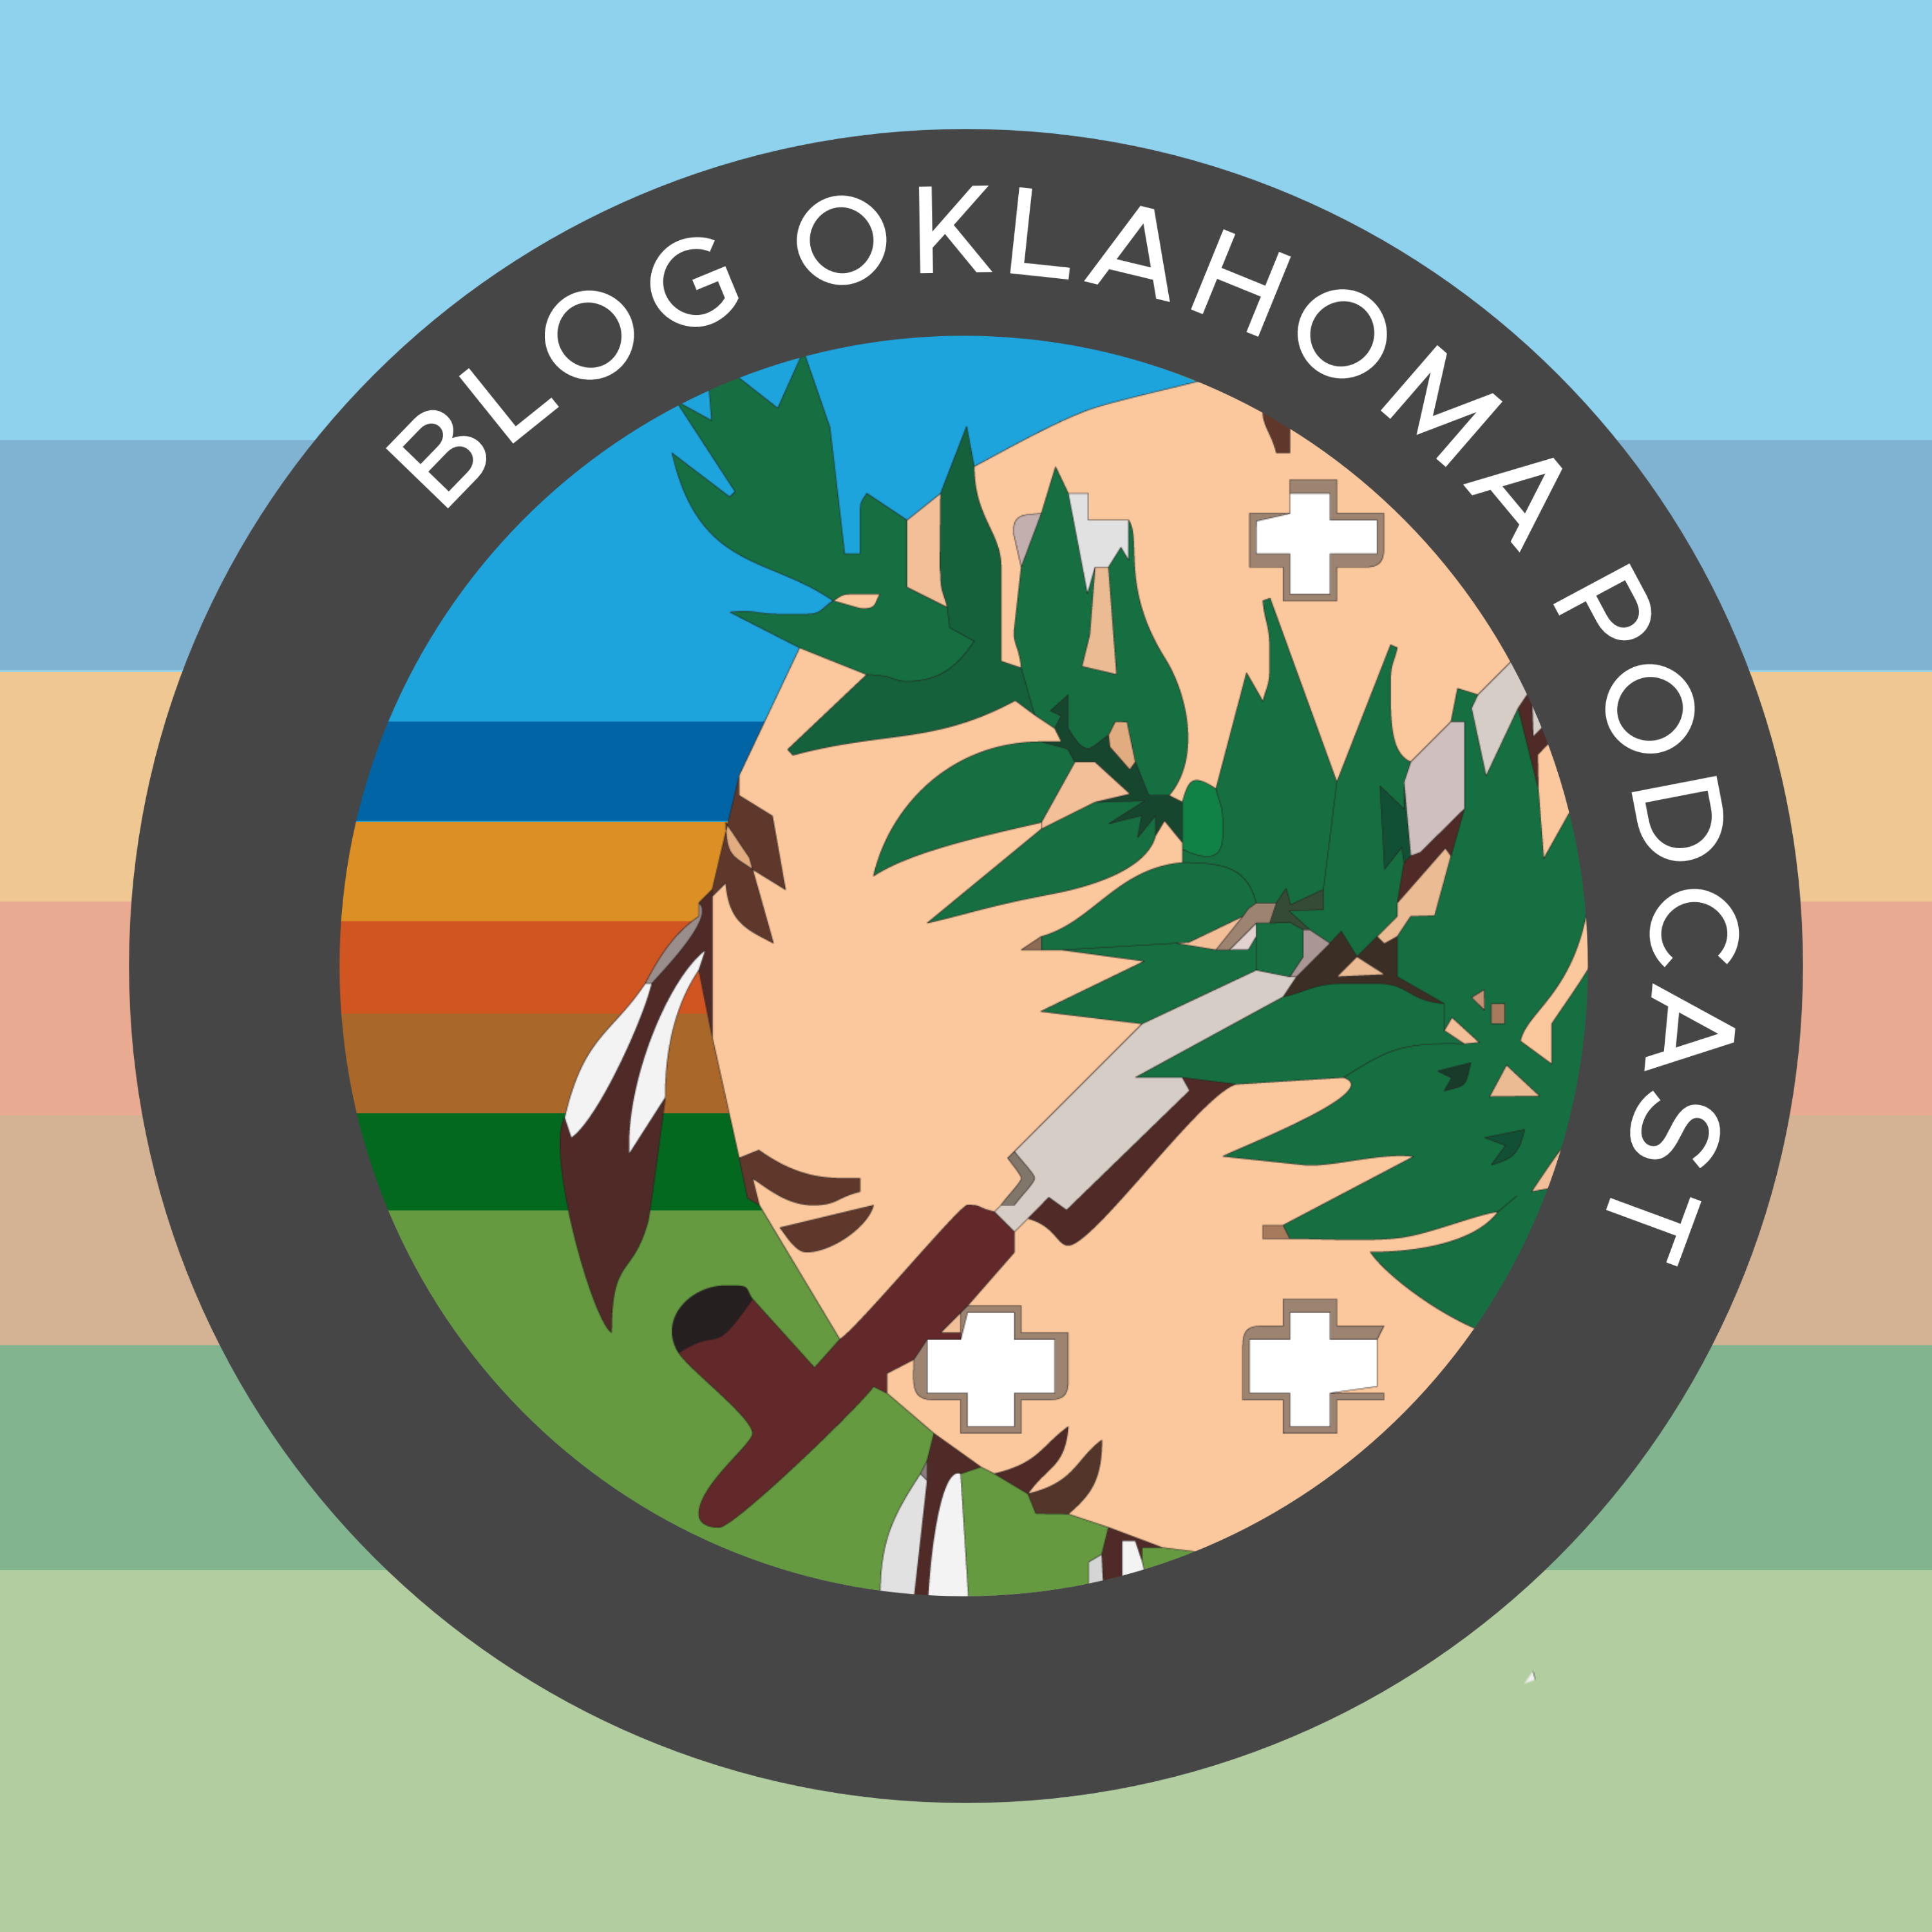 Artwork for Blog Oklahoma Podcast 93: Video Extra - Yet Another Trip To Walmart